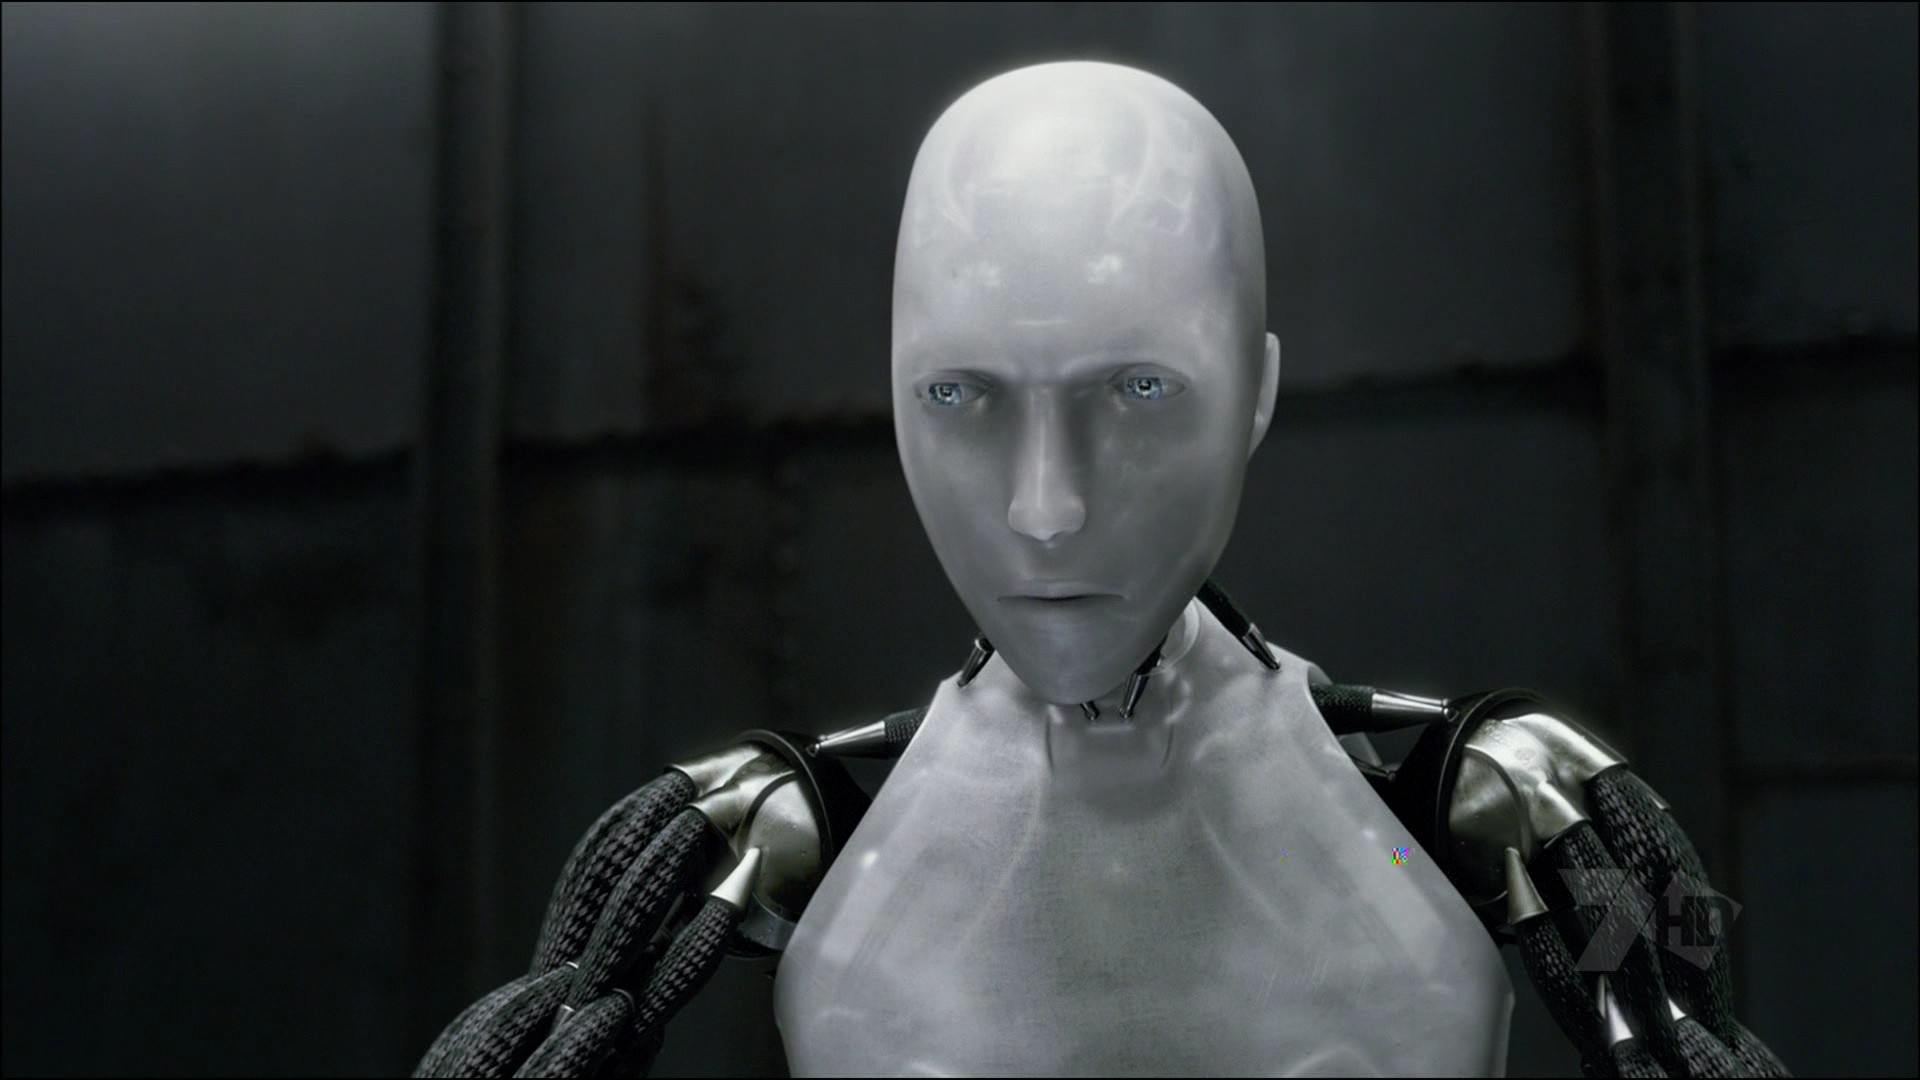 A scene from the film I Robot